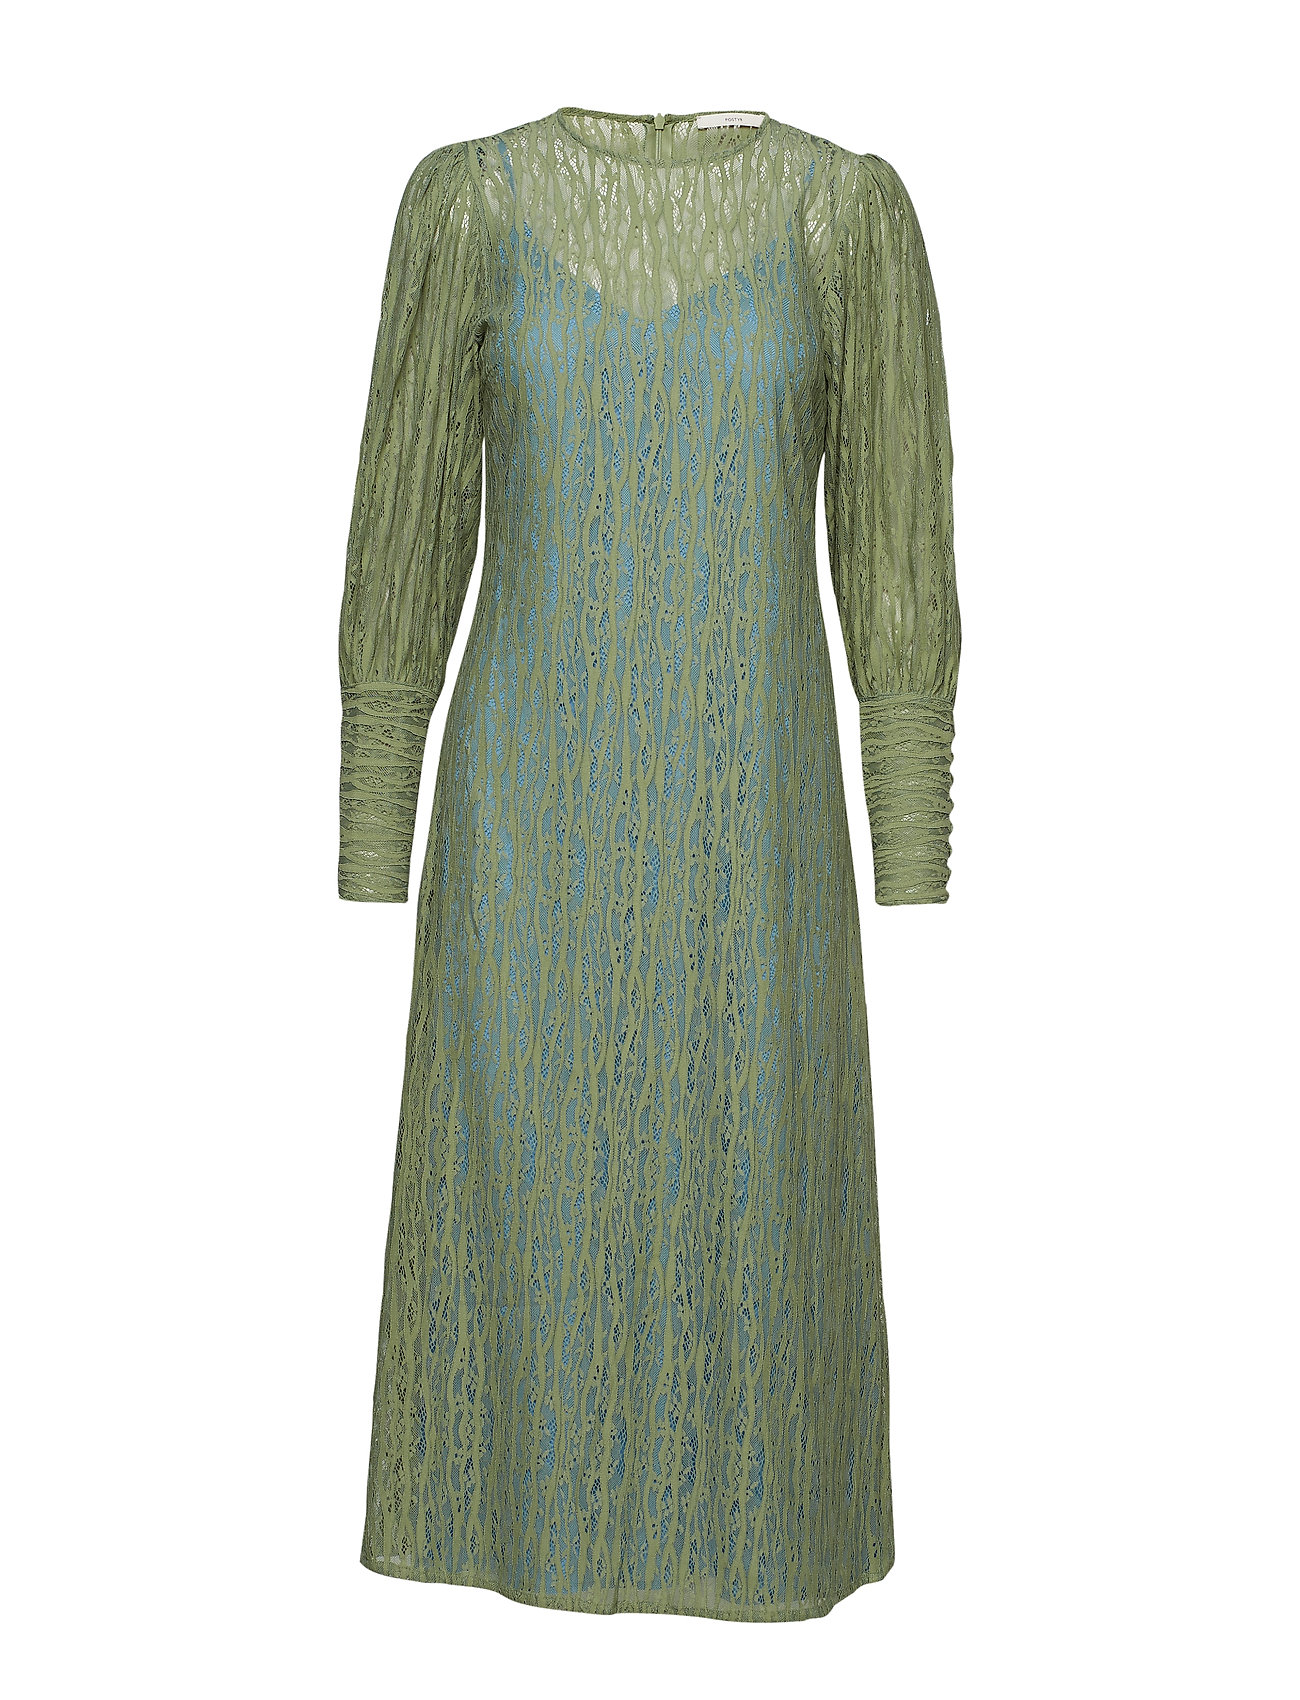 POSTYR POSALEXANDRA LACE DRESS - HEMLOCK